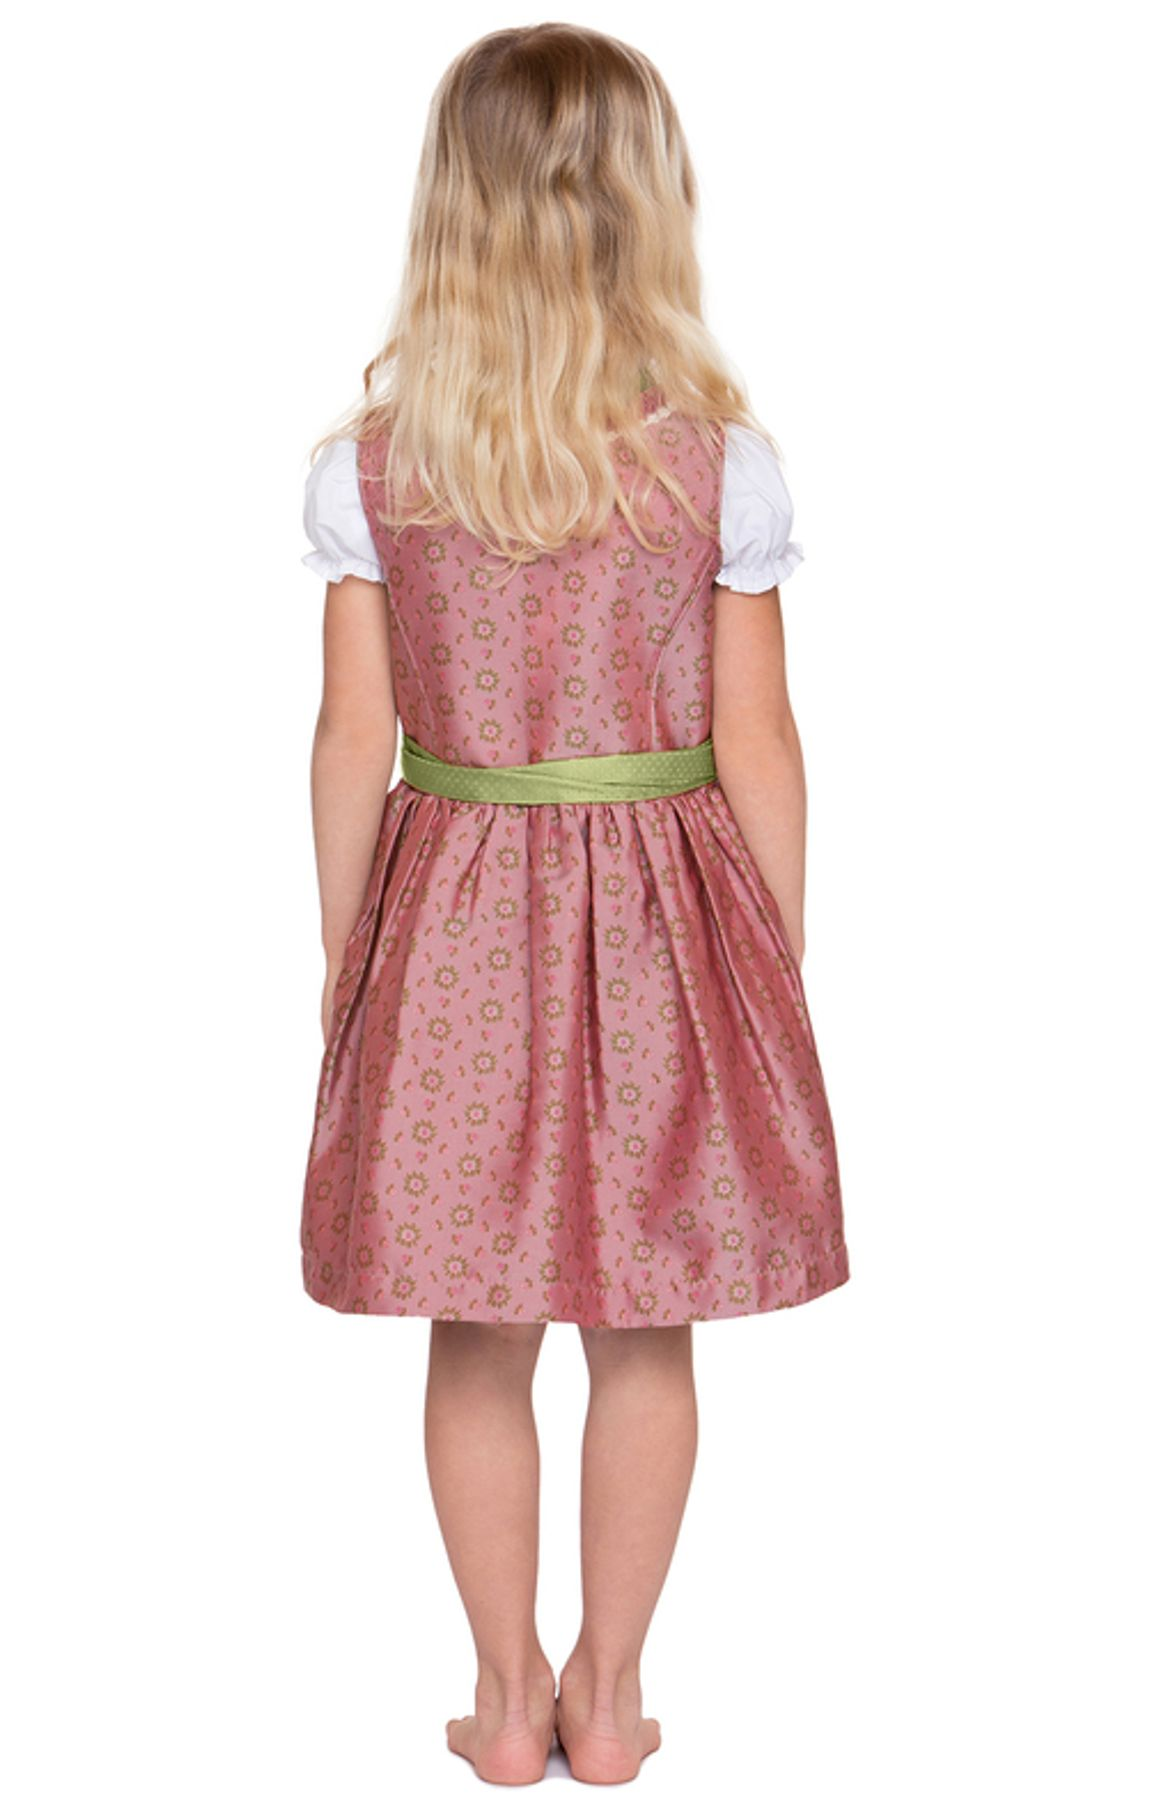 Stockerpoint - Kinder Trachten Dirndl Suki in Rose, Gr. 86-116 – Bild 4